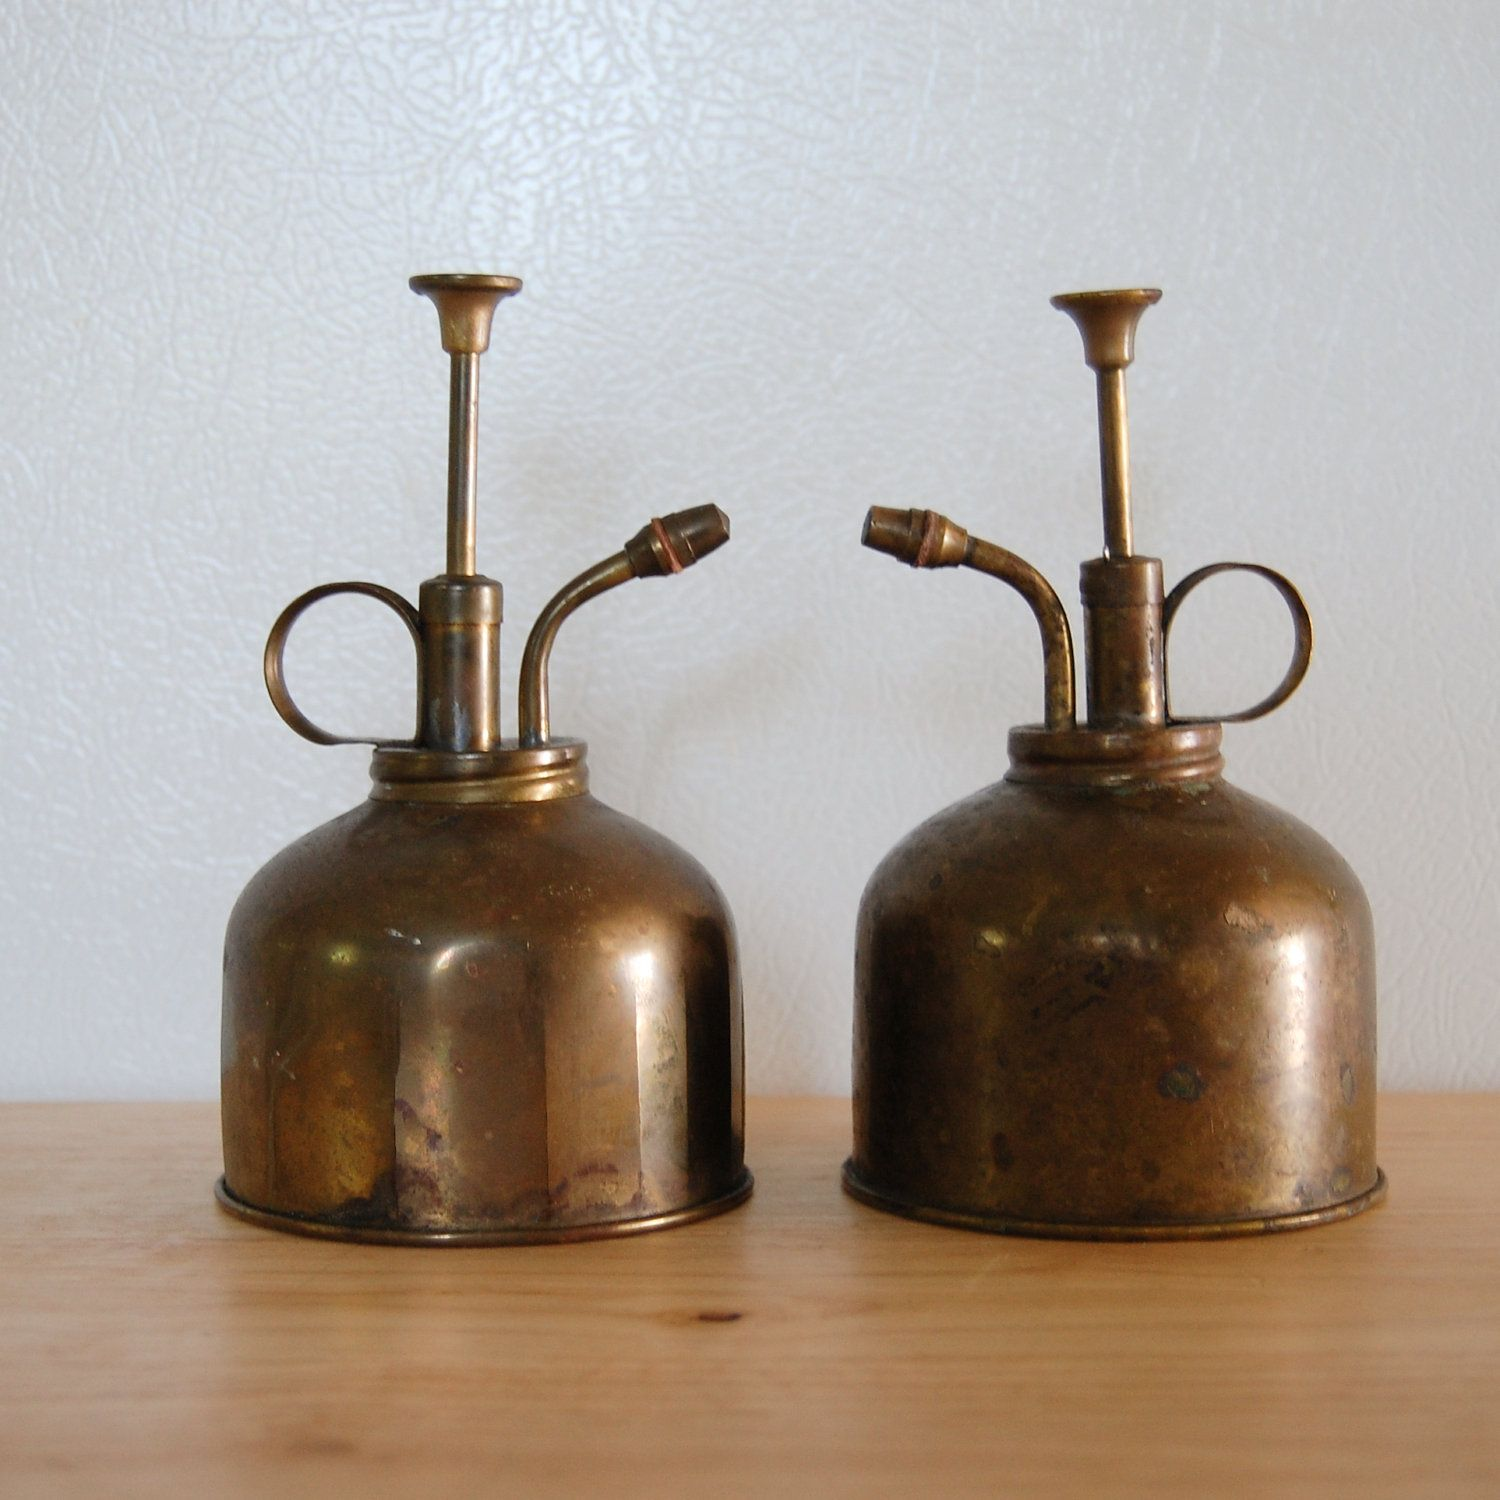 Pair of vintage Oil Dispenser Cans / Orchid Misters - Home